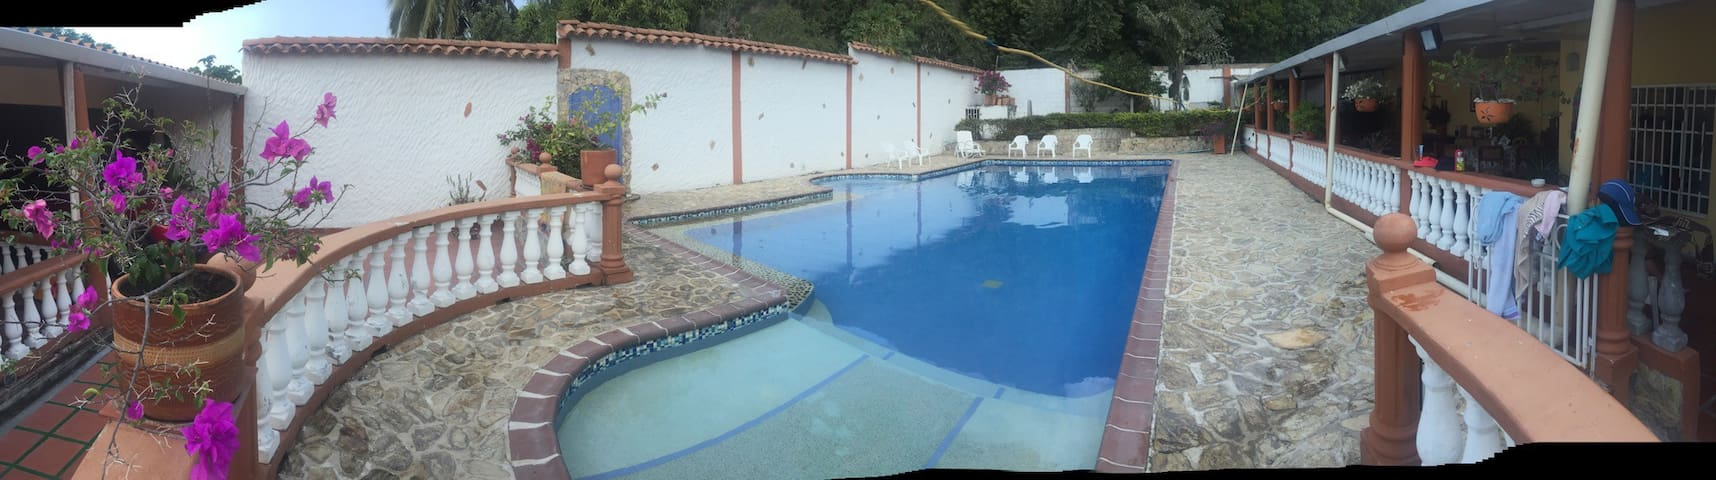 Independent pool . Deep from 1/2 meter to 1.8 meters.